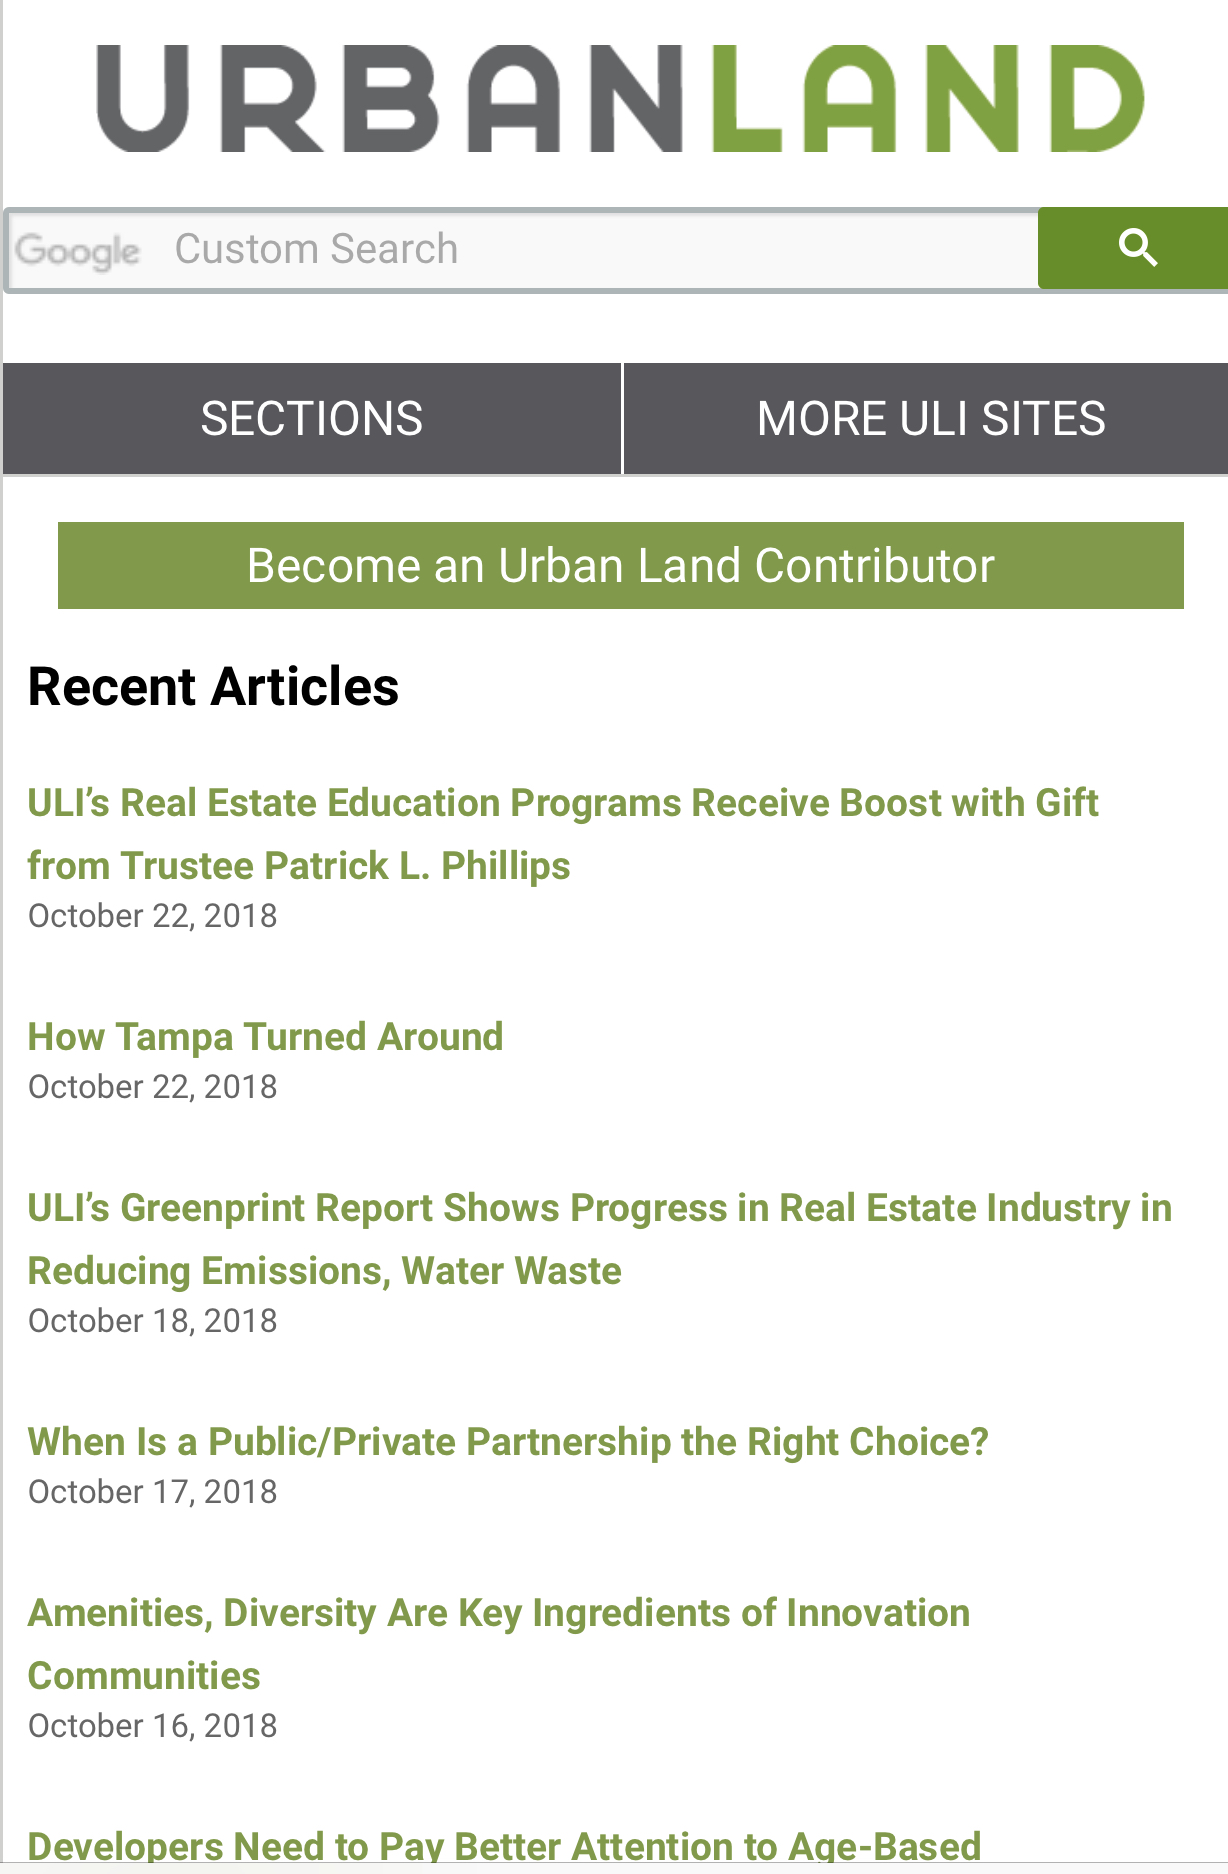 Urban Land Magazine - Urban Land is the magazine of the Urban Land Institute (ULI). We publish four print editions per year, plus online articles nearly every business day. With this online edition, our goal is to give you:Timely, succinct and useful information from ULISpecific stories and examples, told in more people's voicesInformation from your peers and colleagues in real estate & land usePerspectives on today's issues and topics that you don't get anywhere elsehttps://urbanland.uli.org